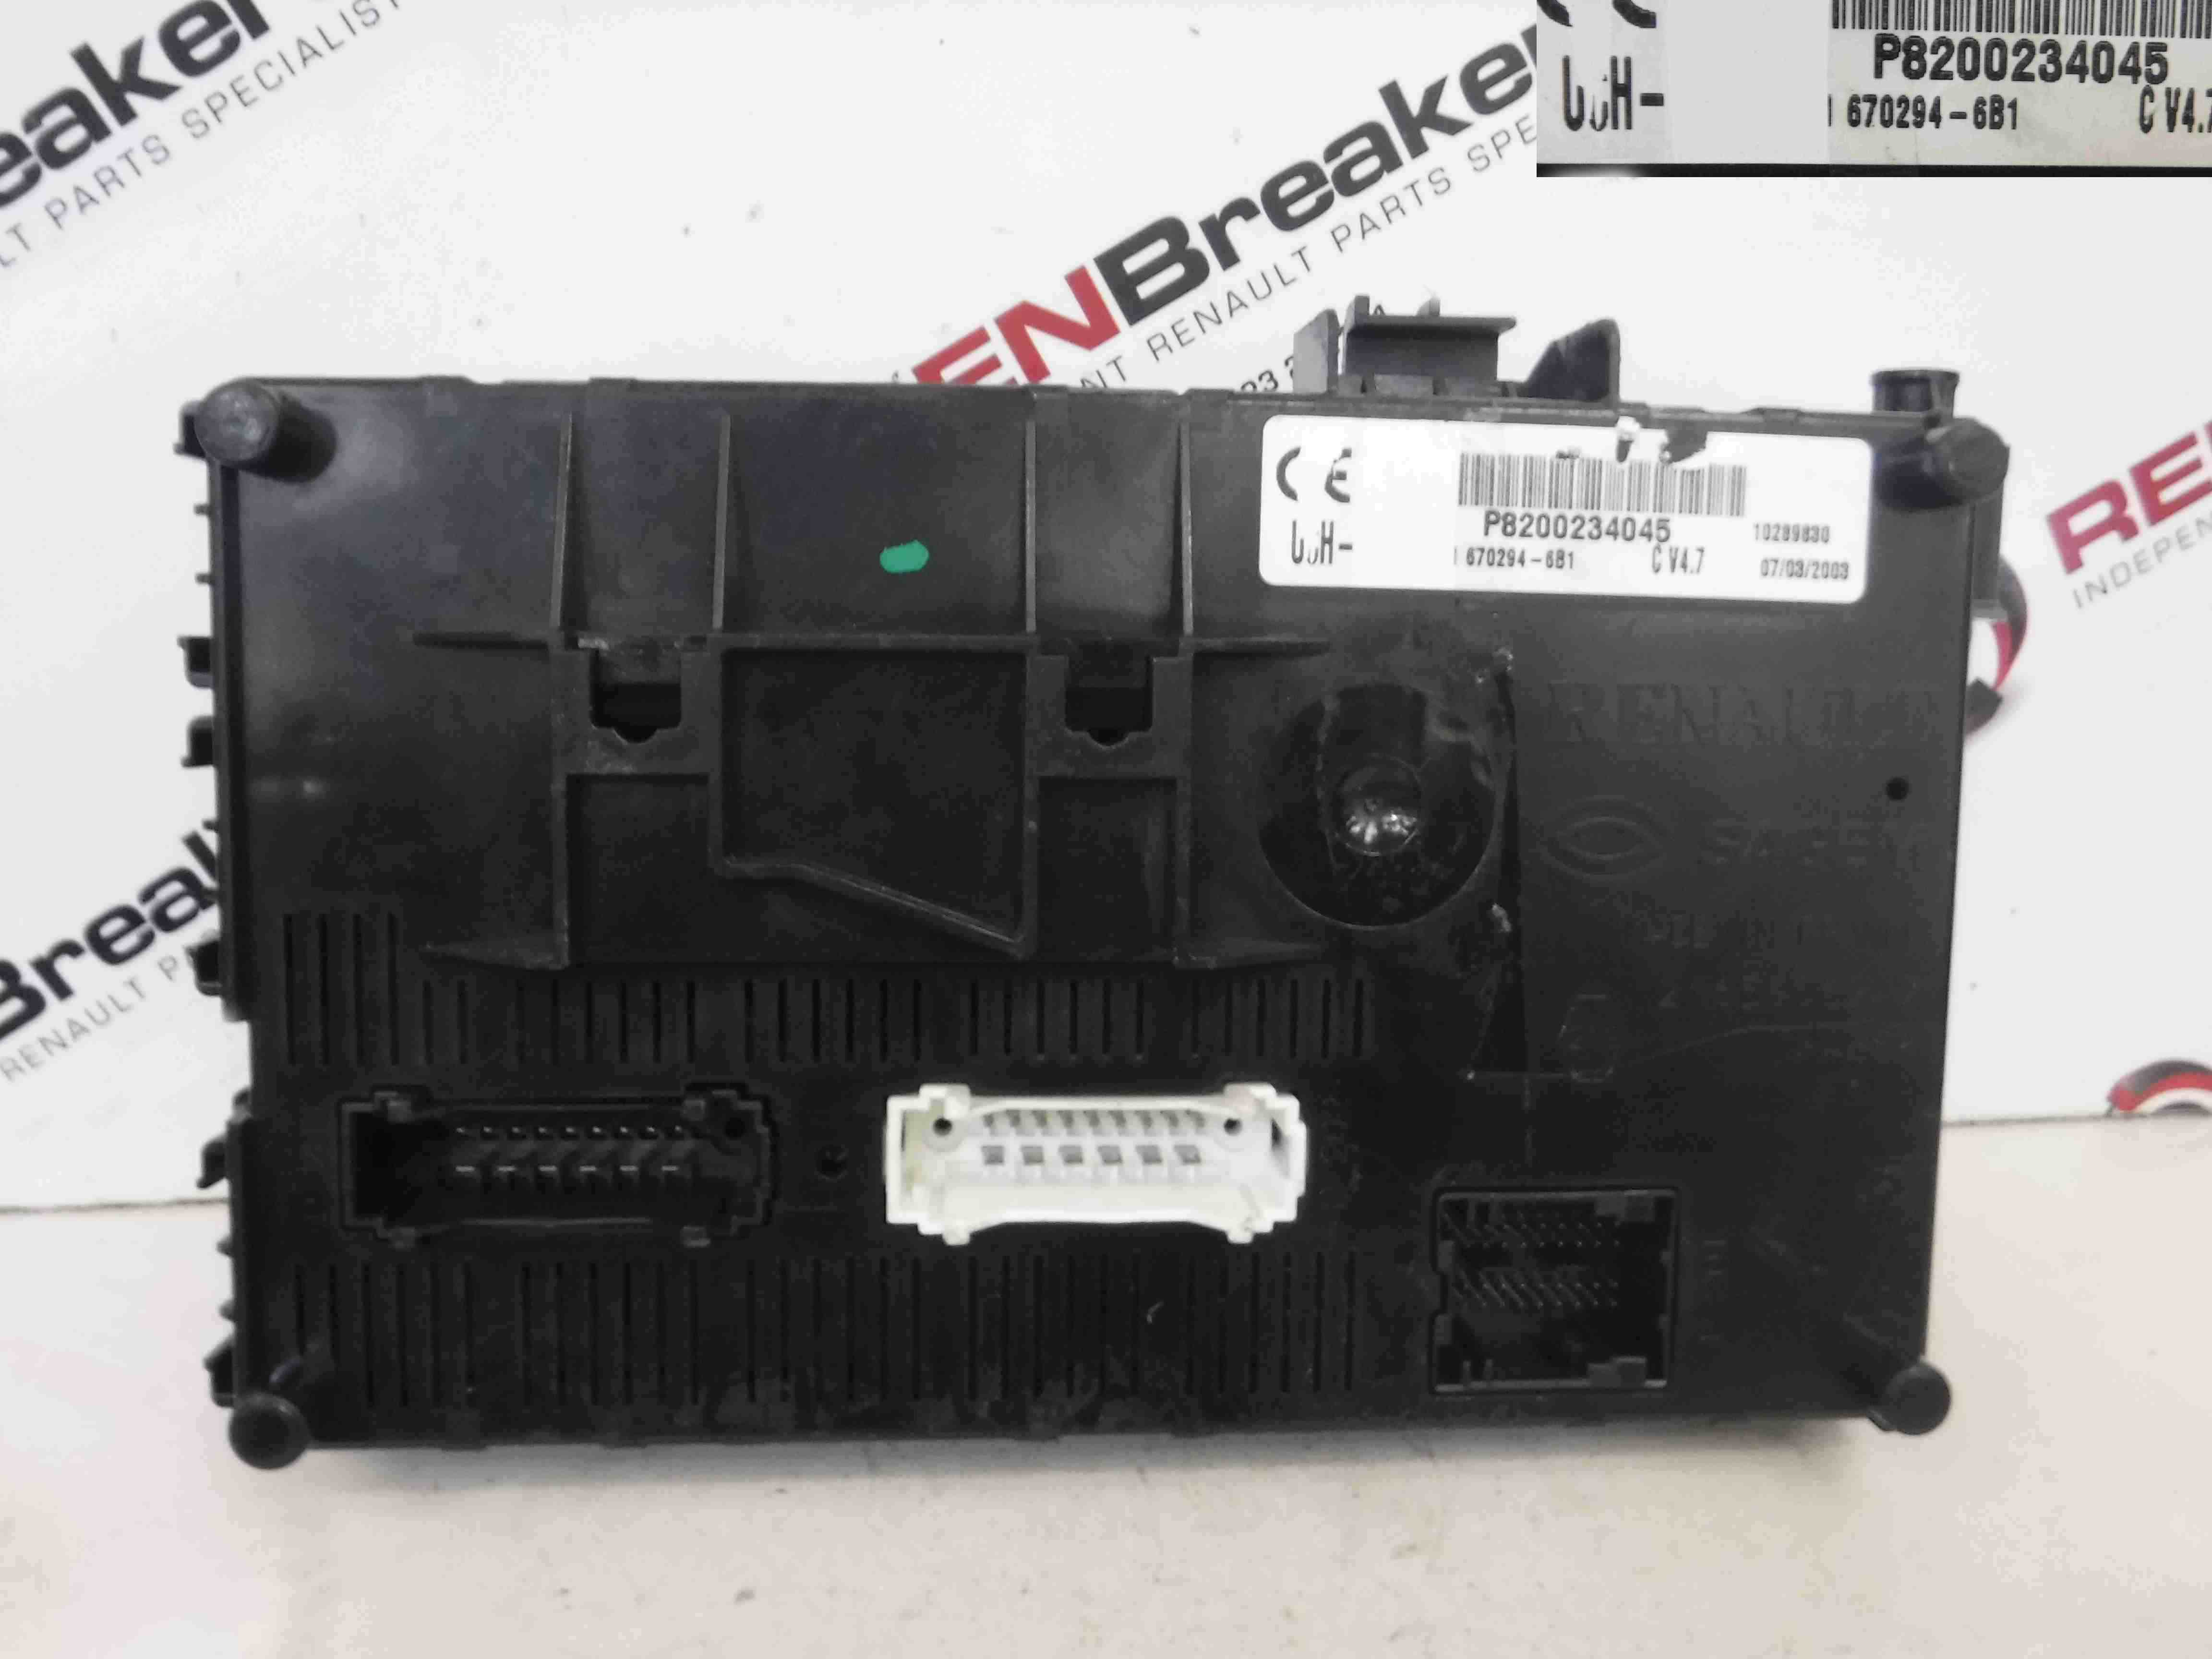 Renault Clio MK2 2001-2006 Dashboard Fuse Box UCH BCM Recoded Coded 8200234045